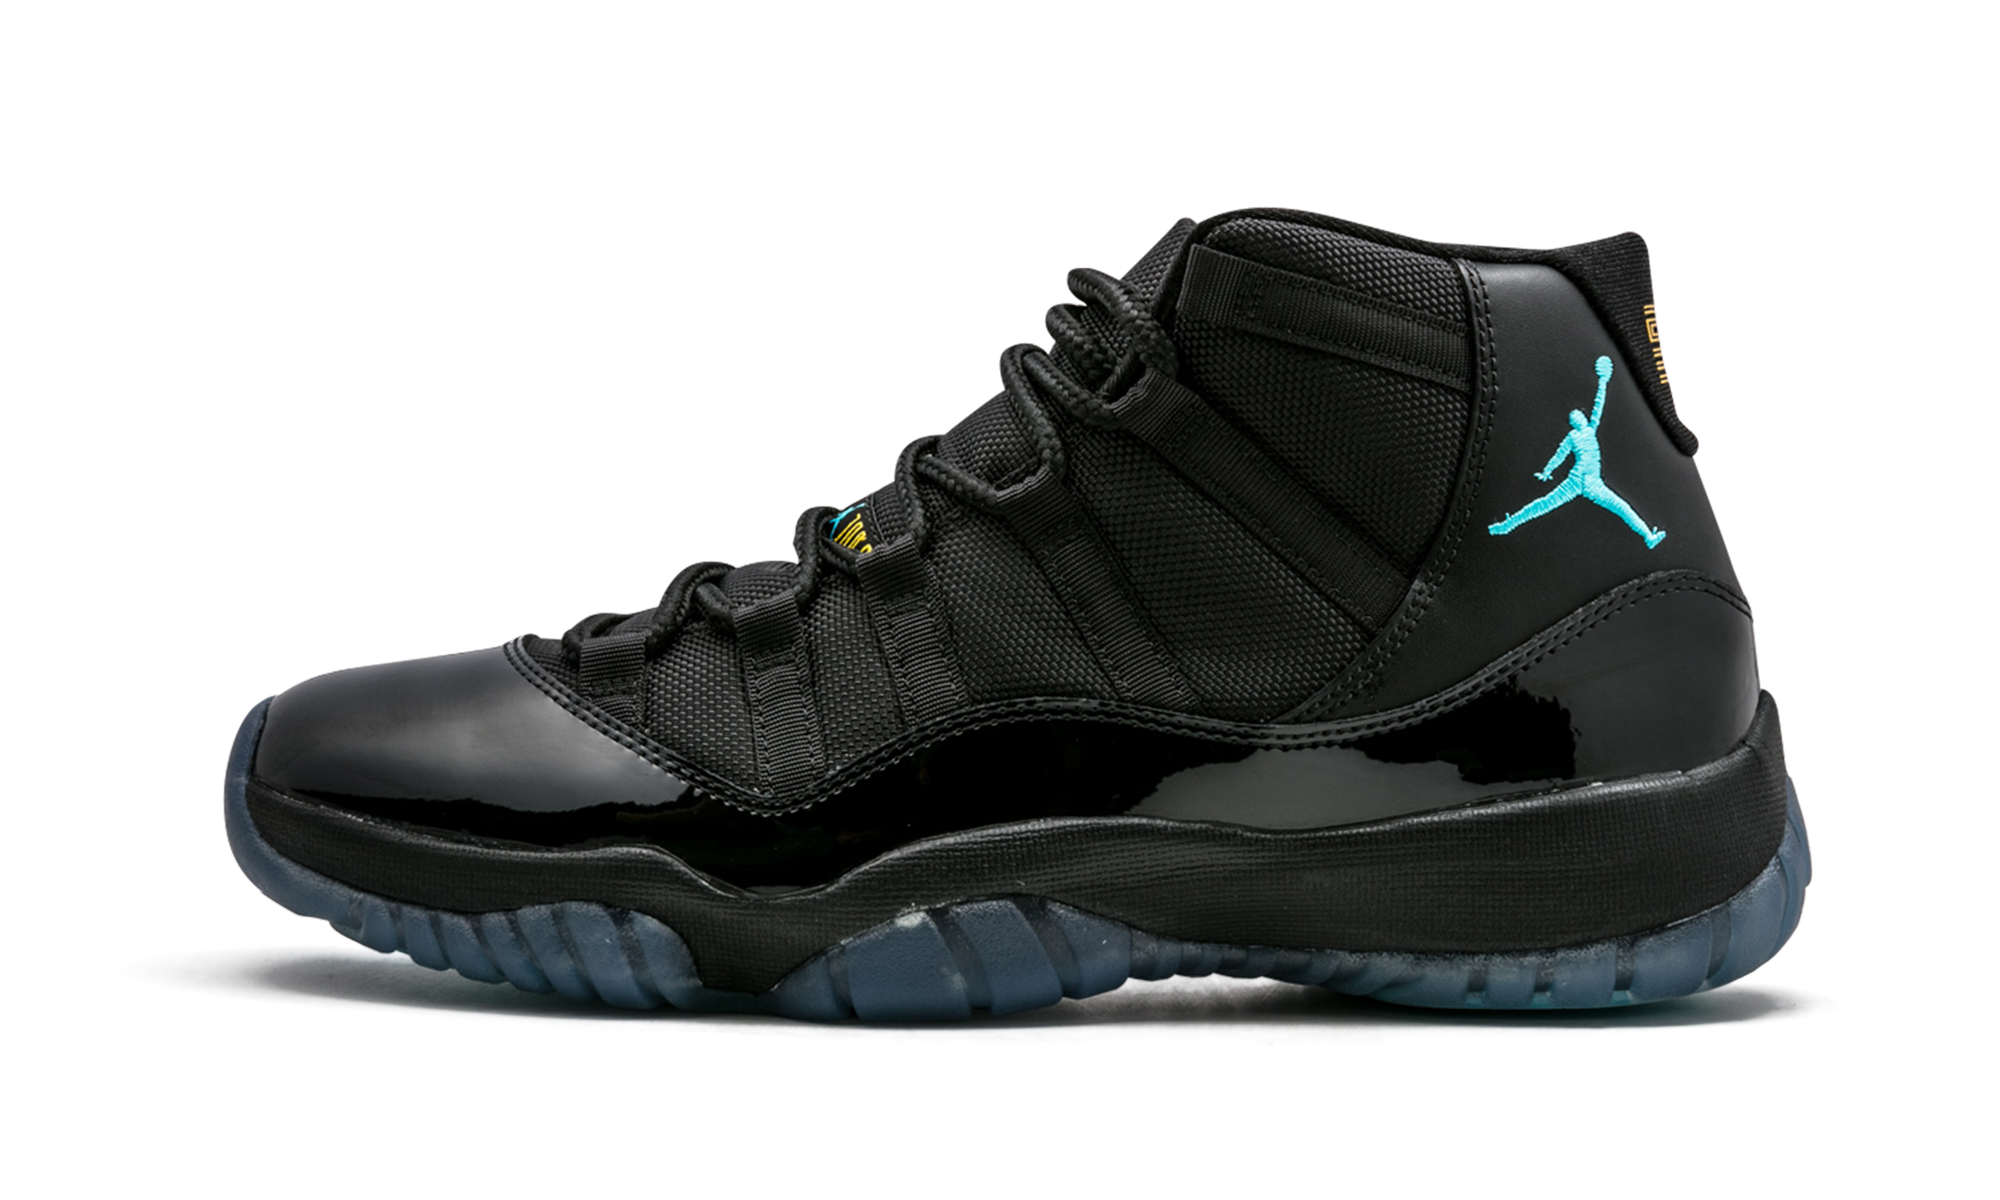 Air Jordan 11 Gamma Blue 2013